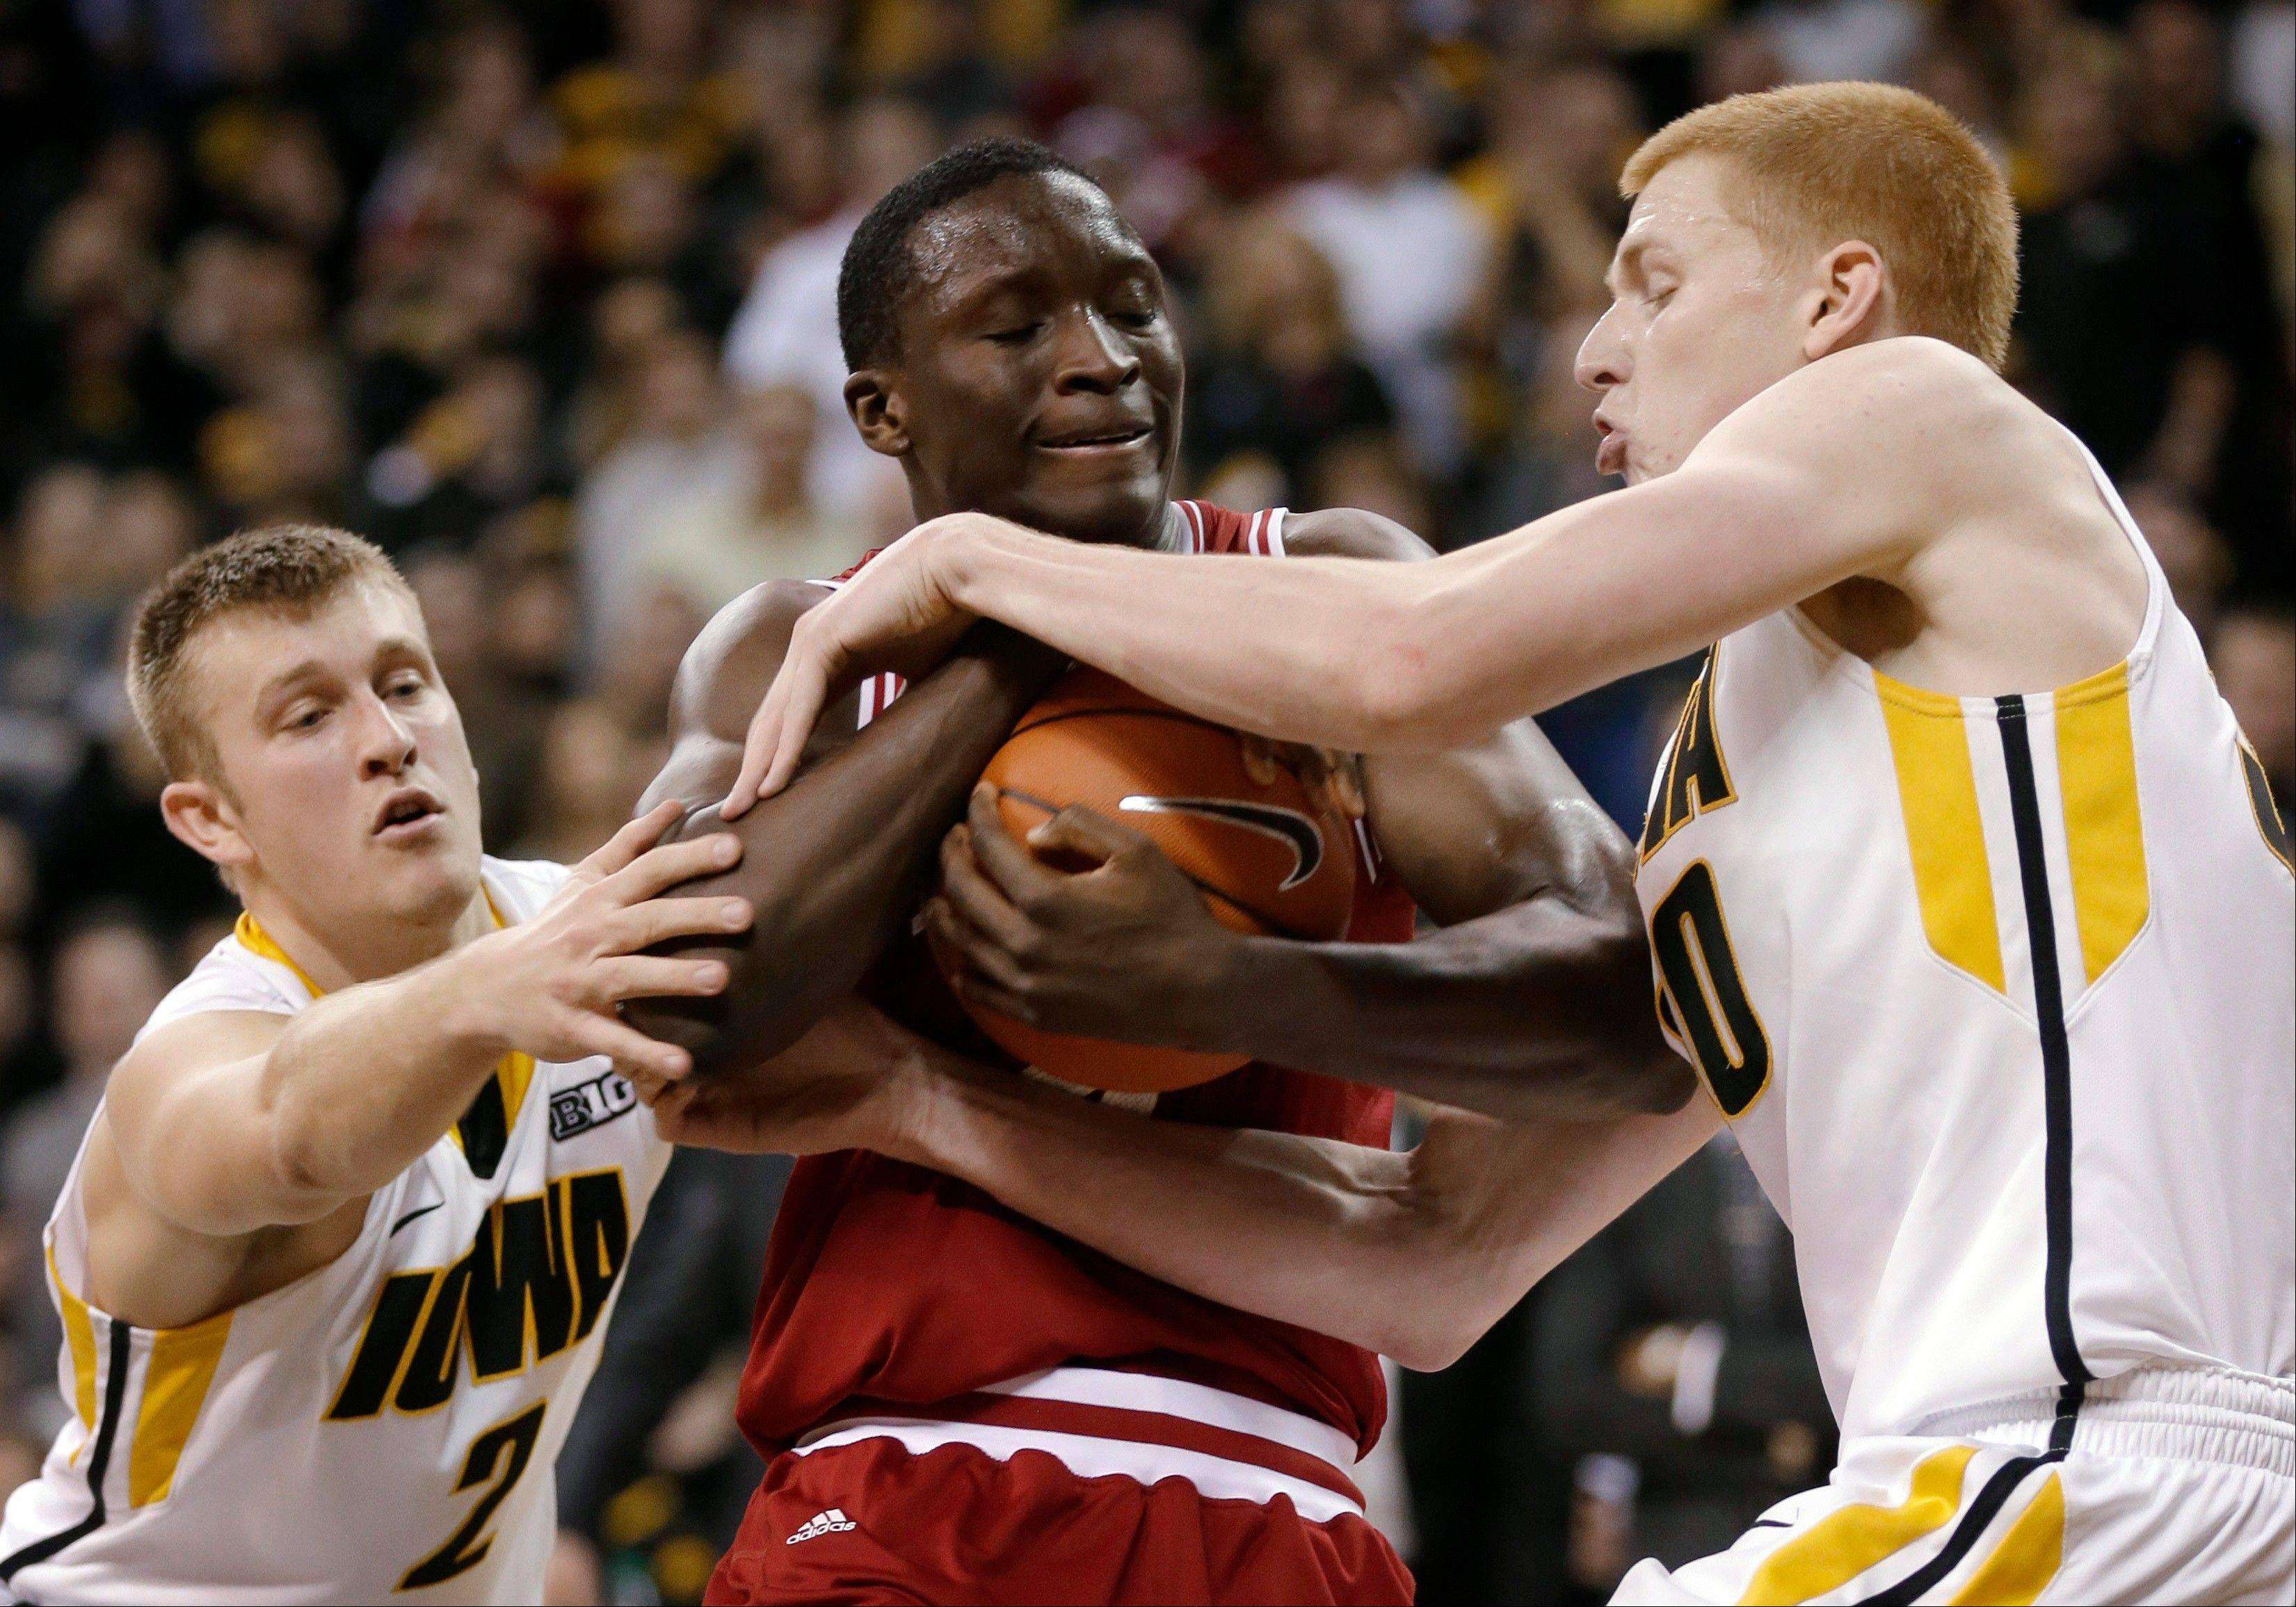 Indiana guard Victor Oladipo, center, grabs a rebound between Iowa defenders Josh Oglesby, left, and Aaron White during the second half Monday in Iowa City, Iowa.